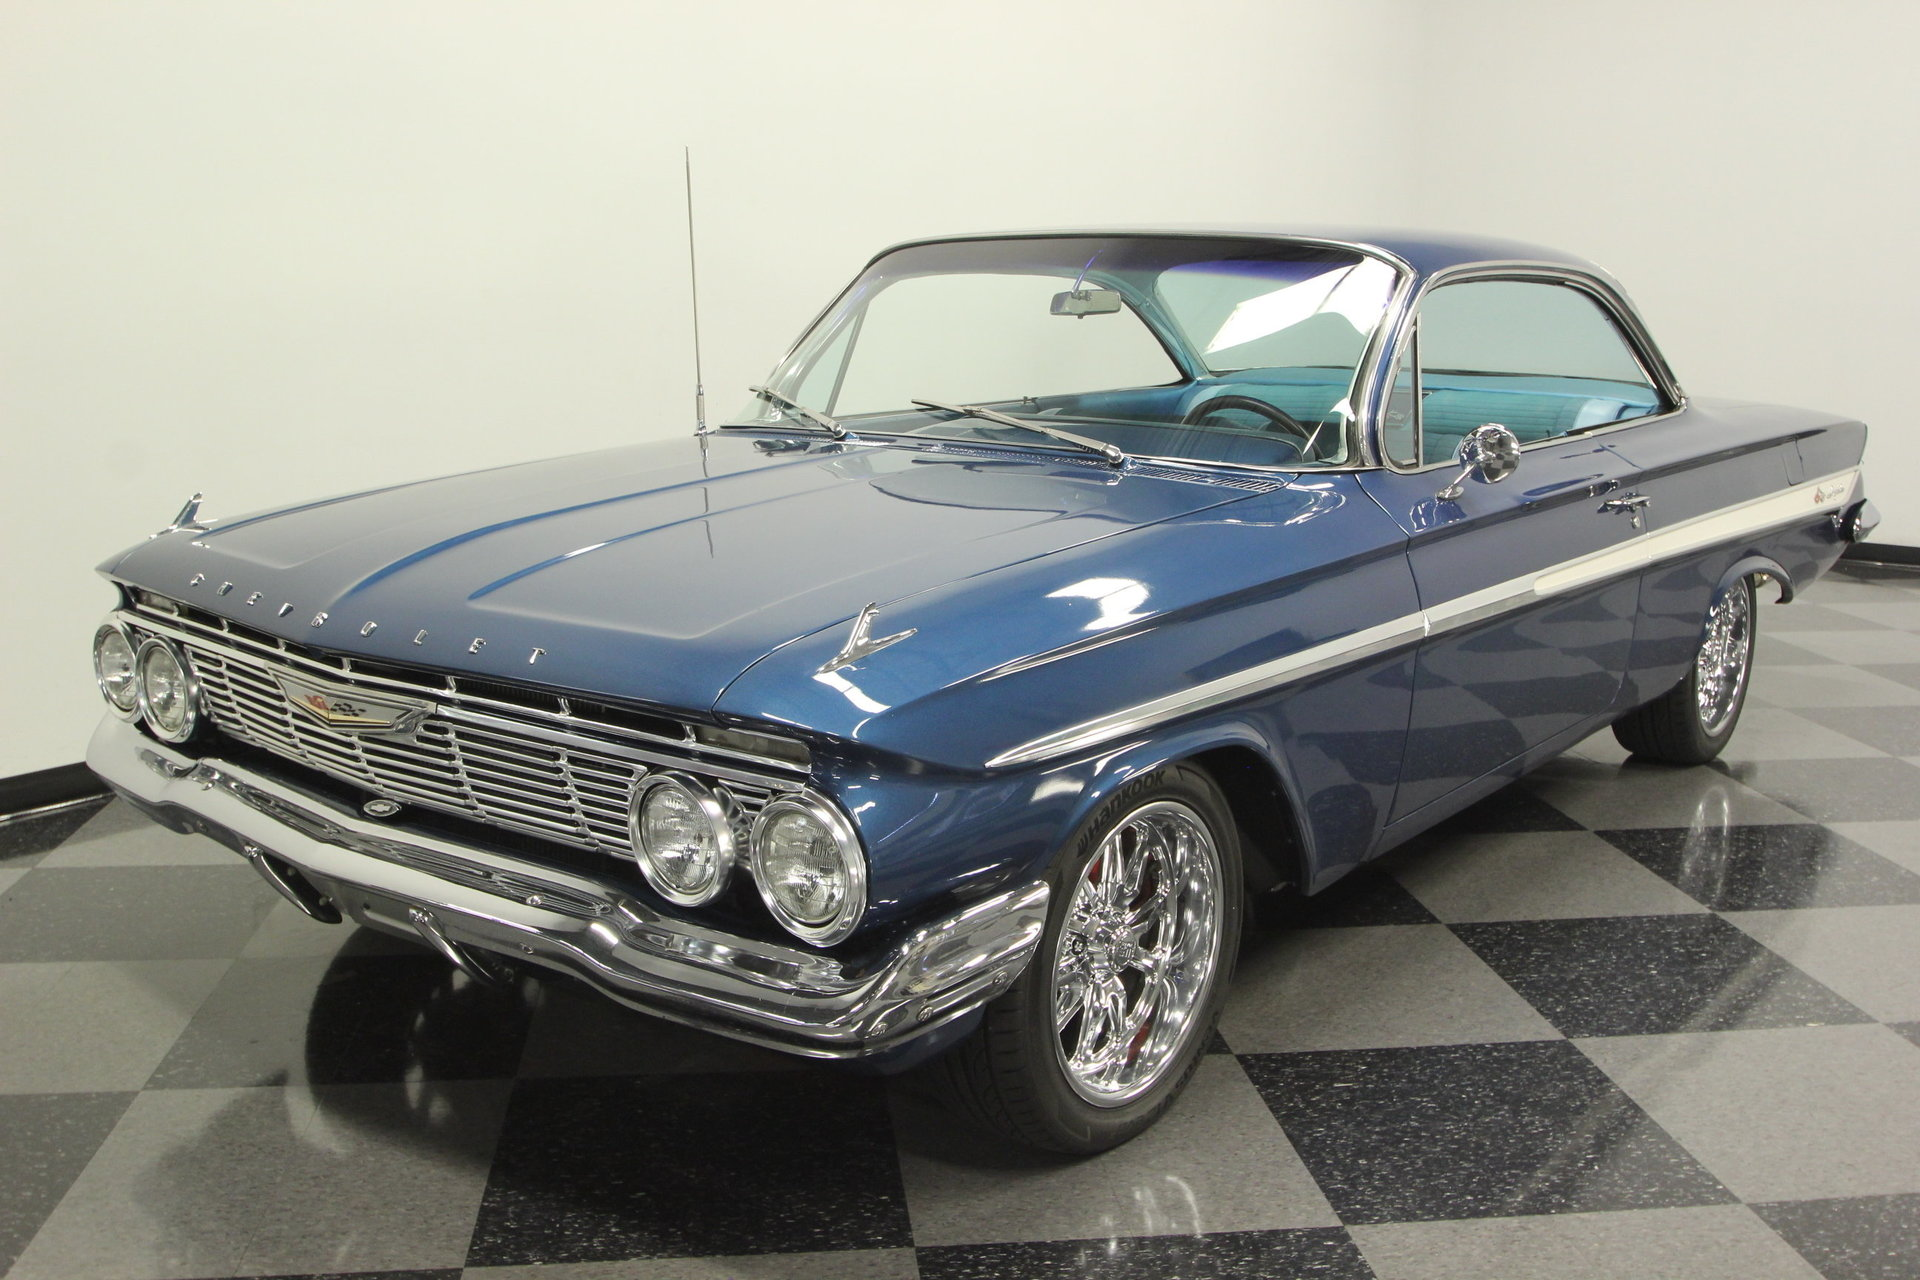 1961 Chevrolet Impala Streetside Classics The Nations Trusted Bubble Top View 360